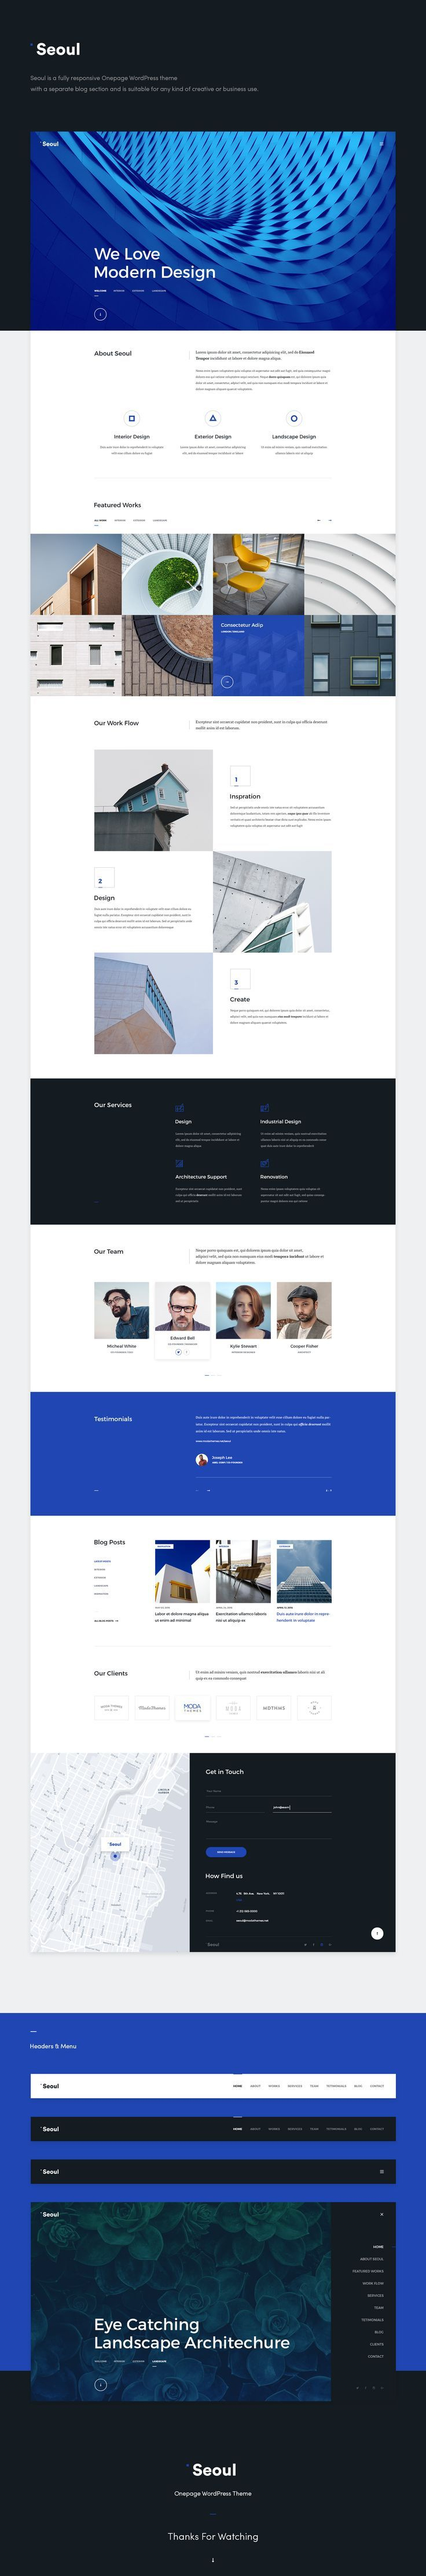 Seoul is a fully responsive Onepage WordPress theme with a separate blog section and is suitable for any kind of creative or business use.. The UX Blog podcast is also available on iTunes.